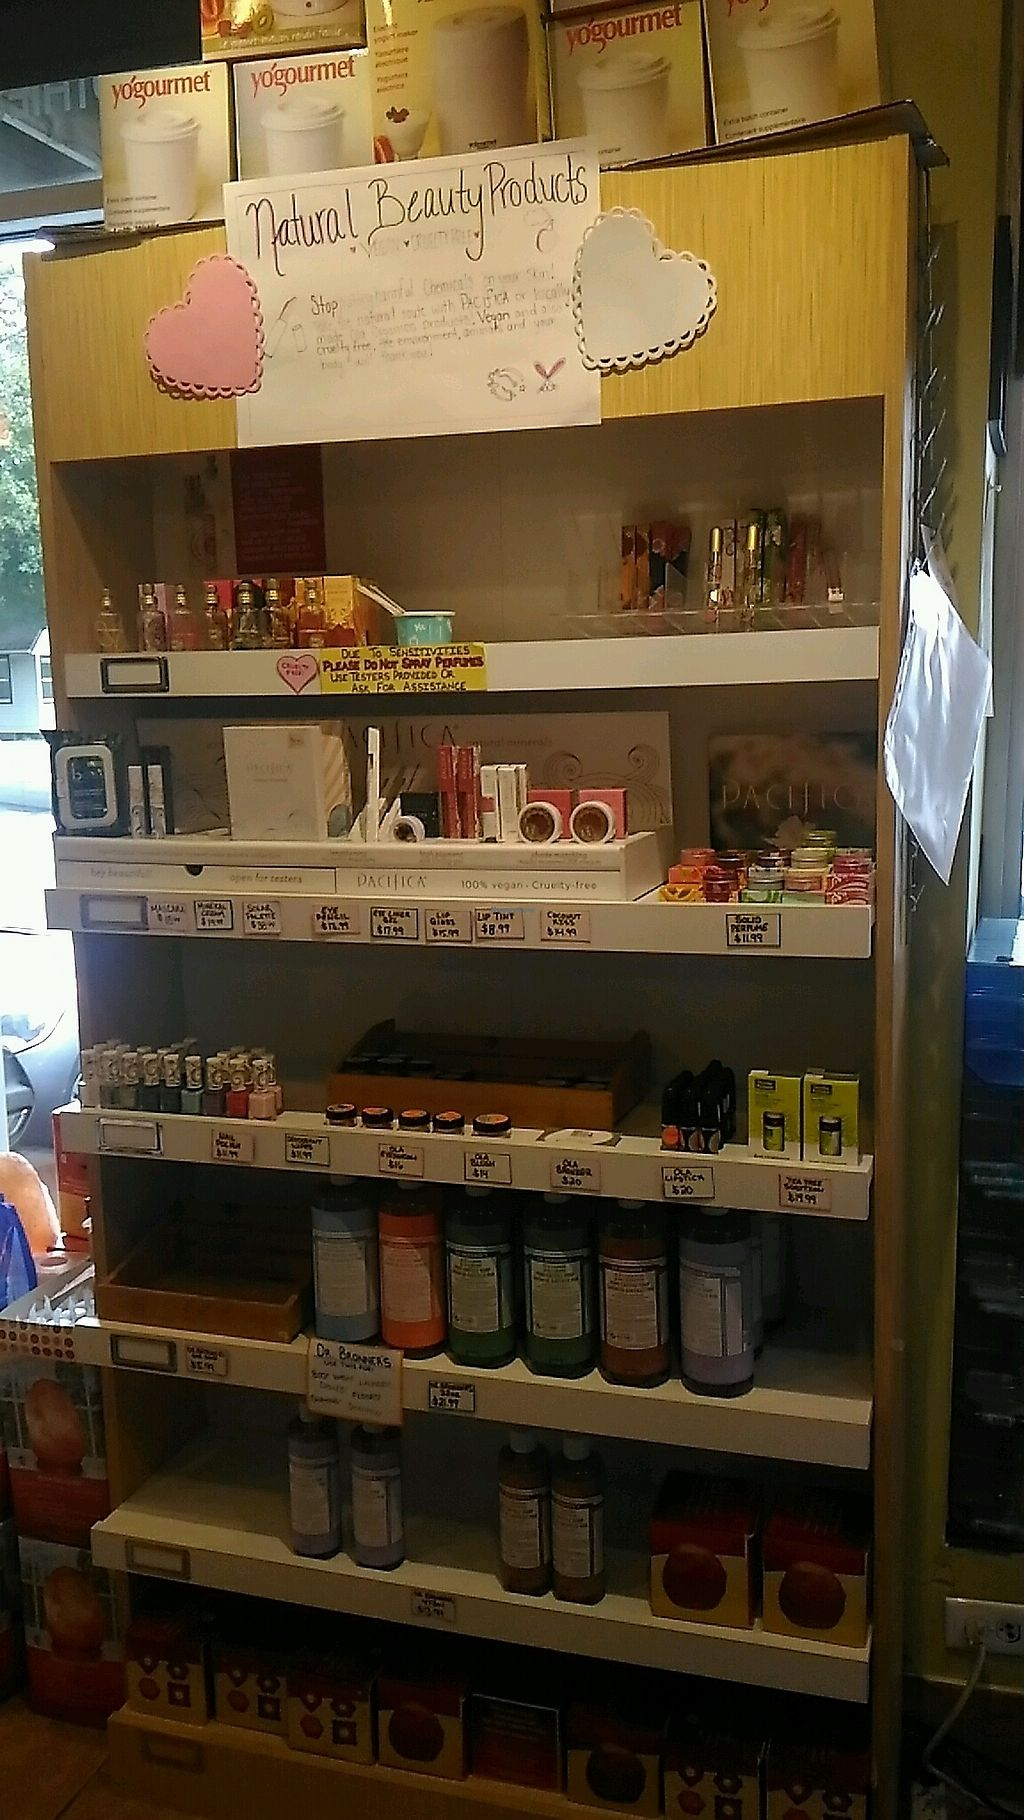 """Photo of Super Natural Health Products  by <a href=""""/members/profile/QuothTheRaven"""">QuothTheRaven</a> <br/>cruelty free <br/> September 28, 2017  - <a href='/contact/abuse/image/3052/309381'>Report</a>"""